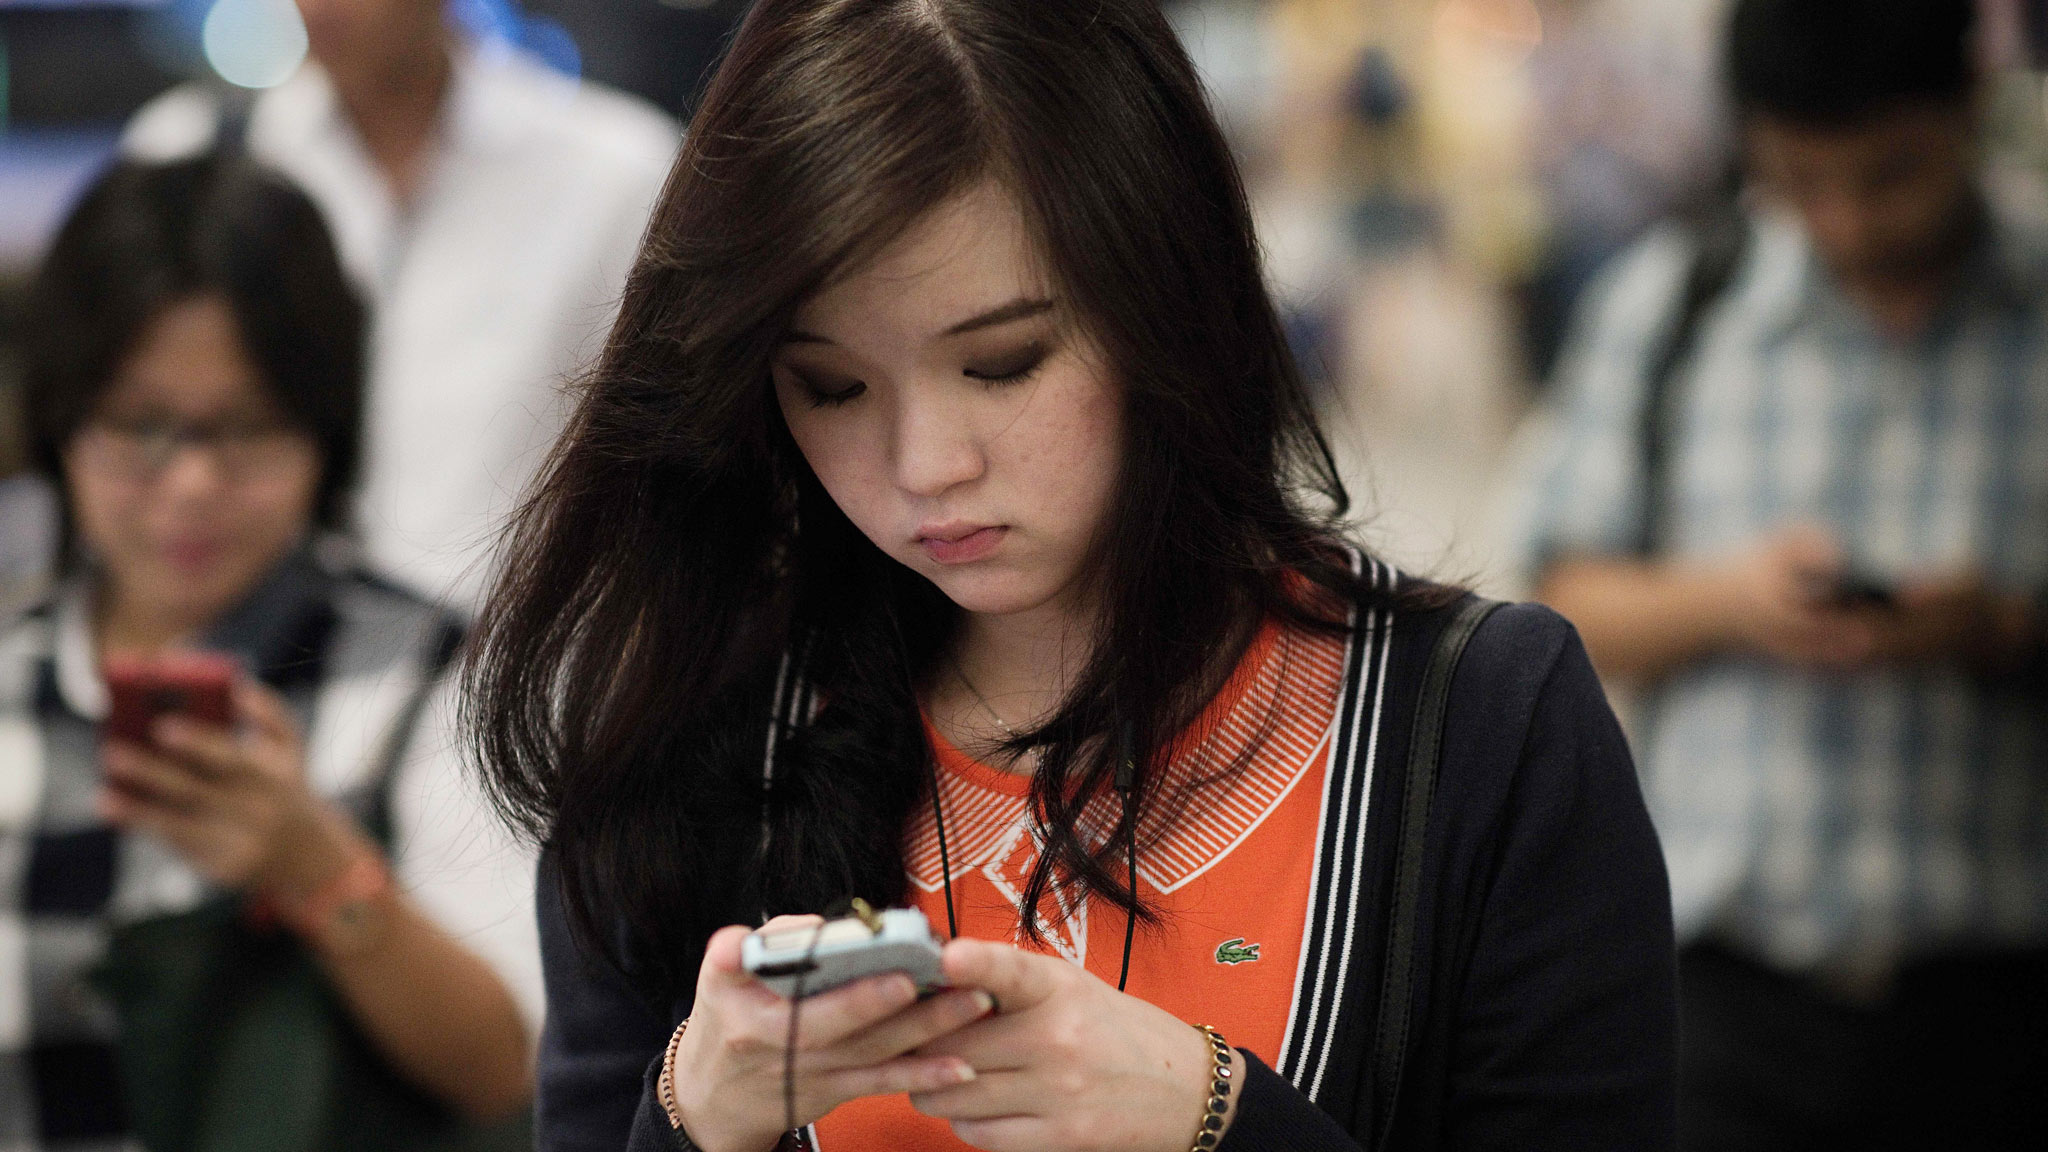 Asian mobile chat apps challenge western dominance